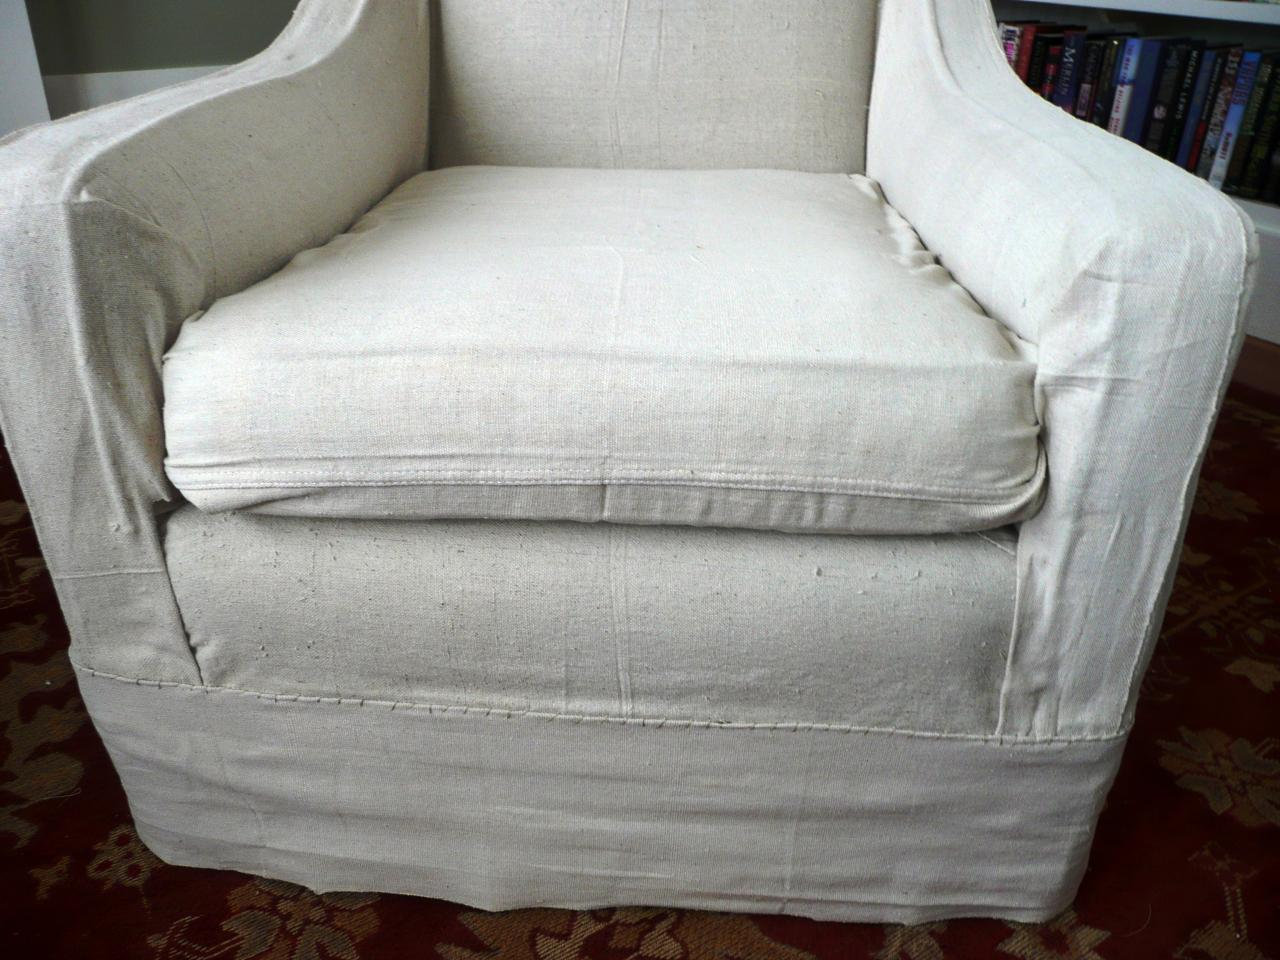 Slip Cover For Chair How To Make Arm Chair Slipcovers For Less Than 30 How Tos Diy